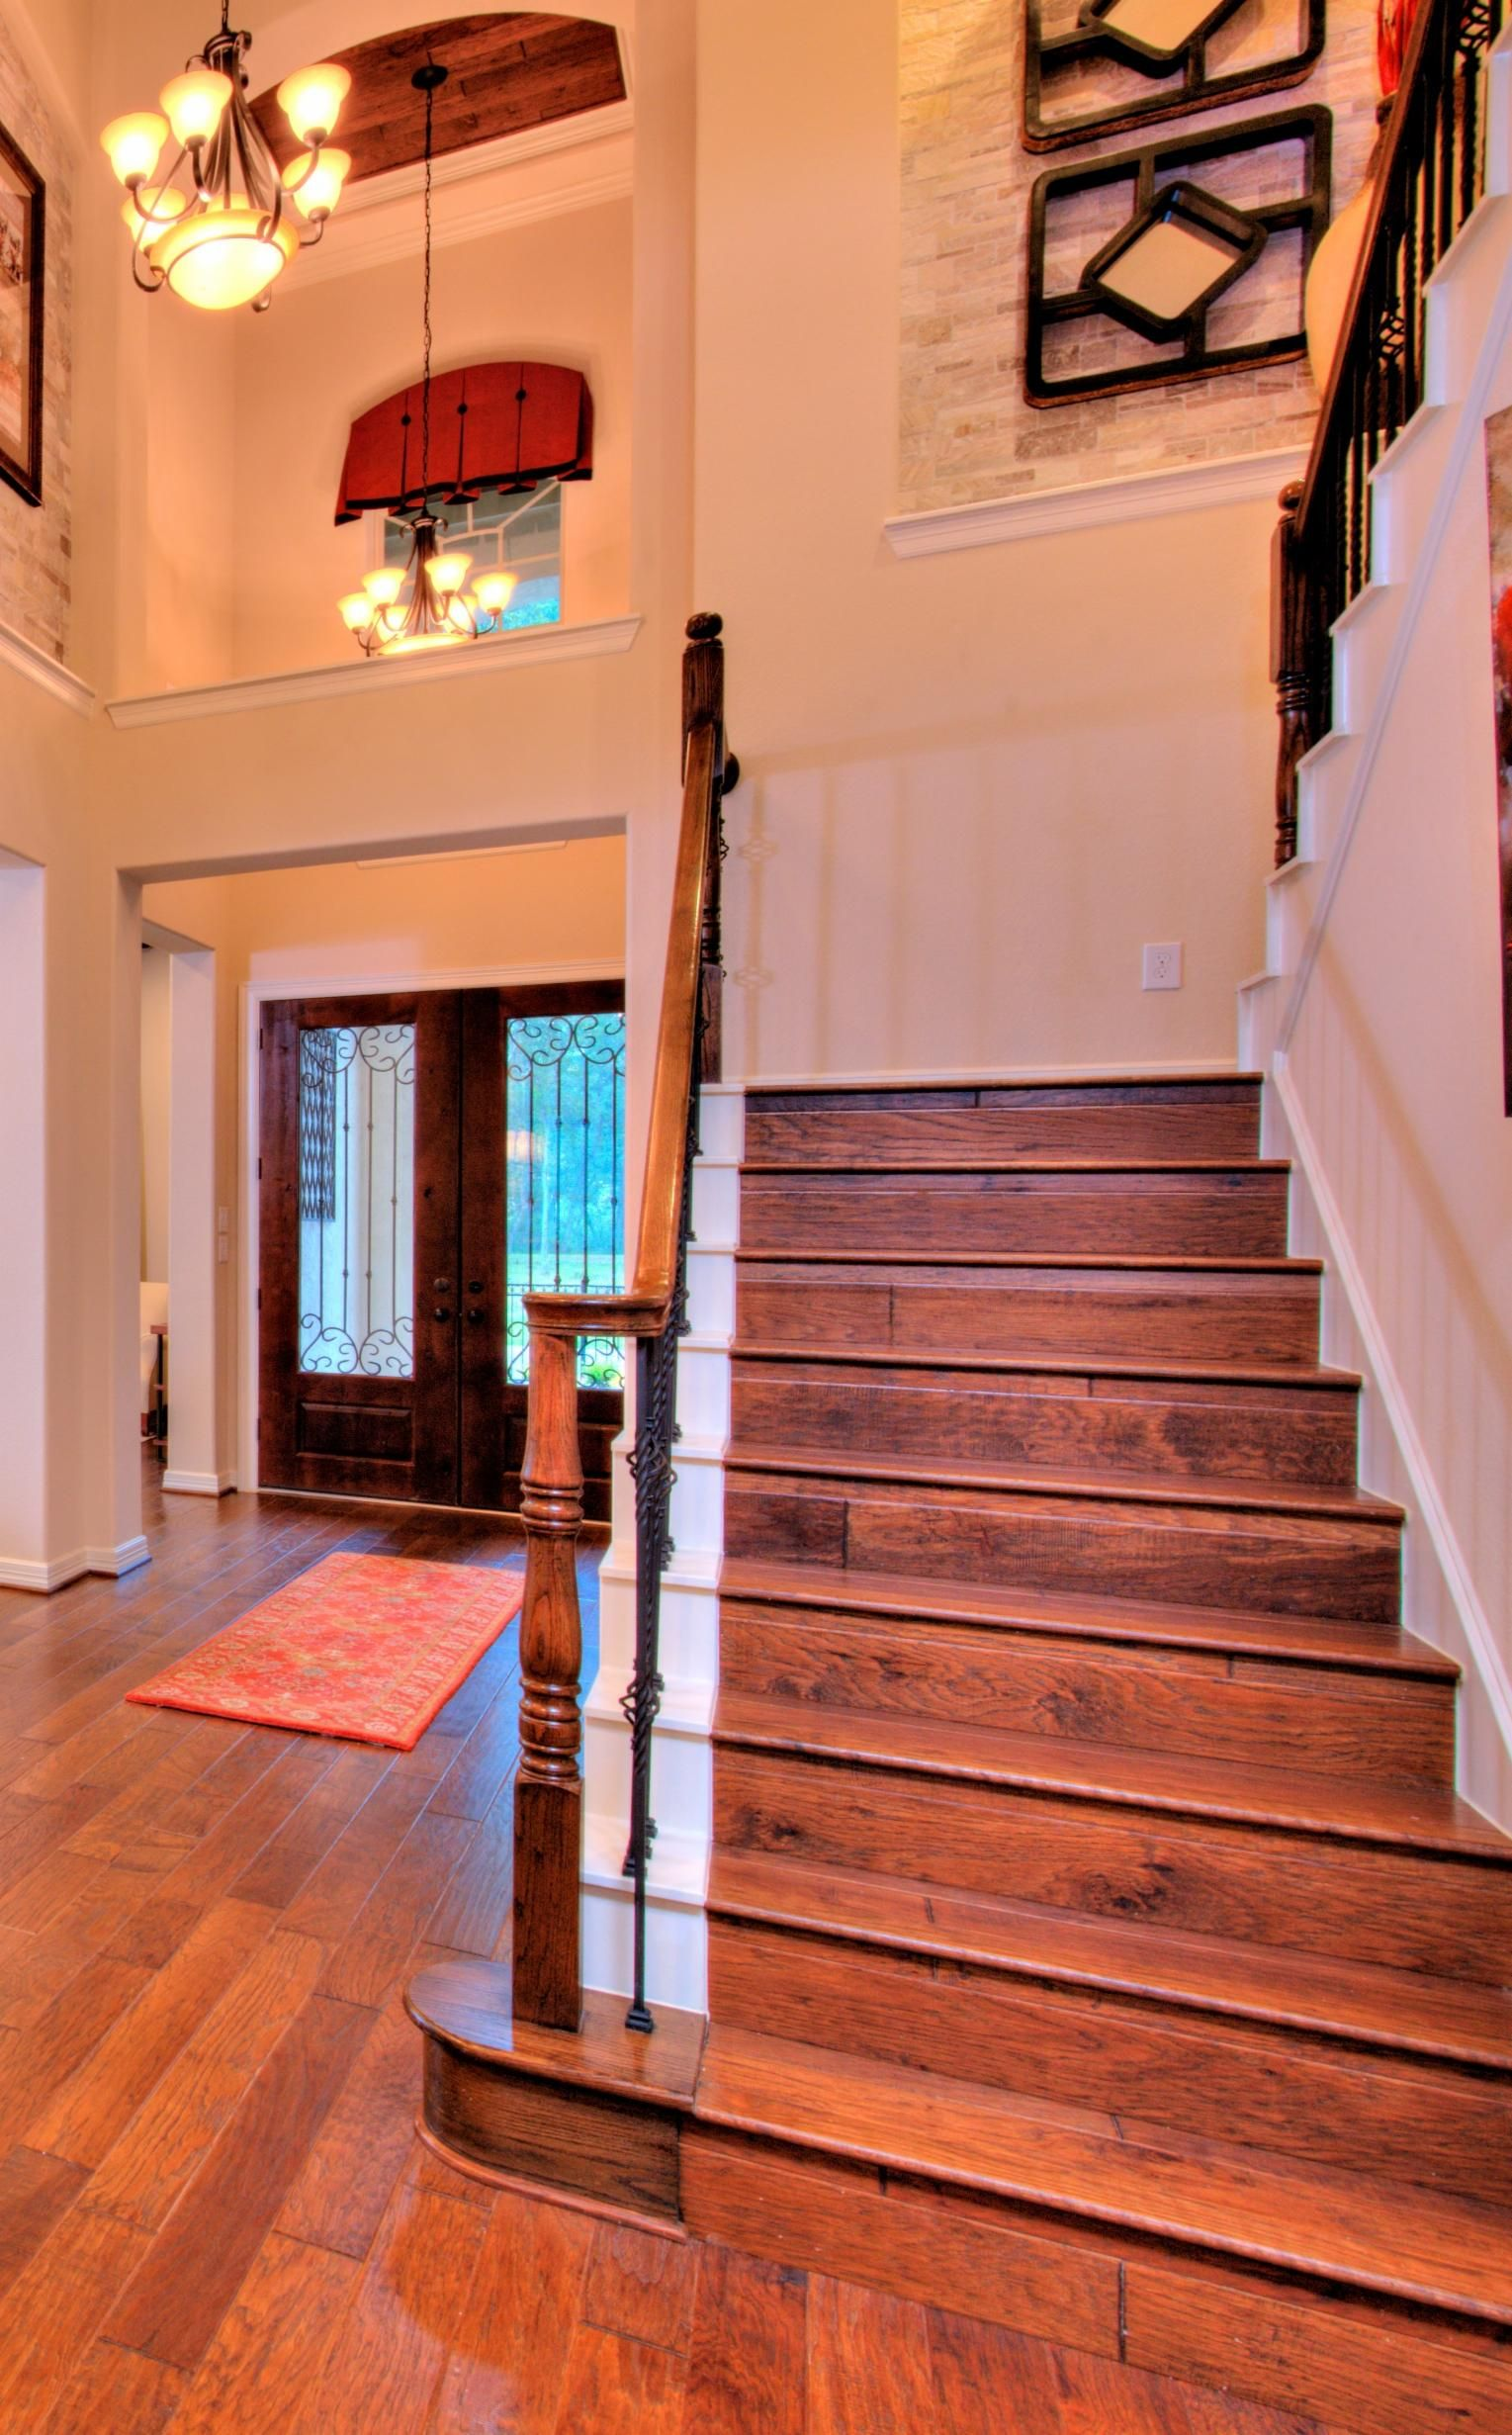 Beautiful foyer and staircase new homes missouri city